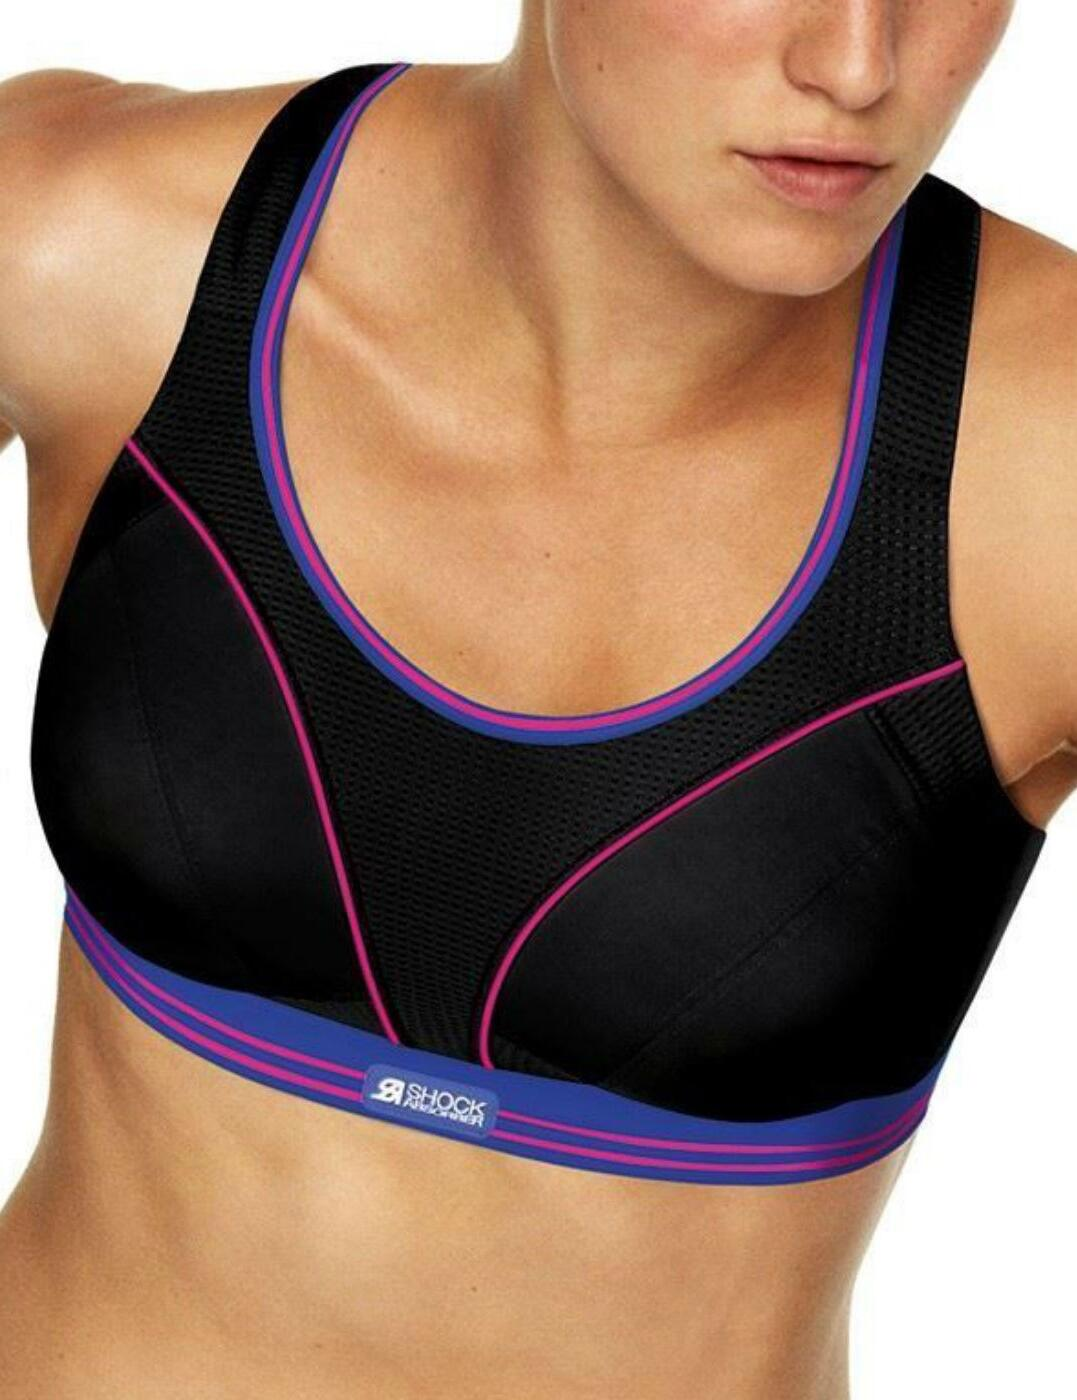 Shock-Absorber-Sports-Bra-S5044-Non-Wired-High-Impact-Run-Sports-Bra thumbnail 9